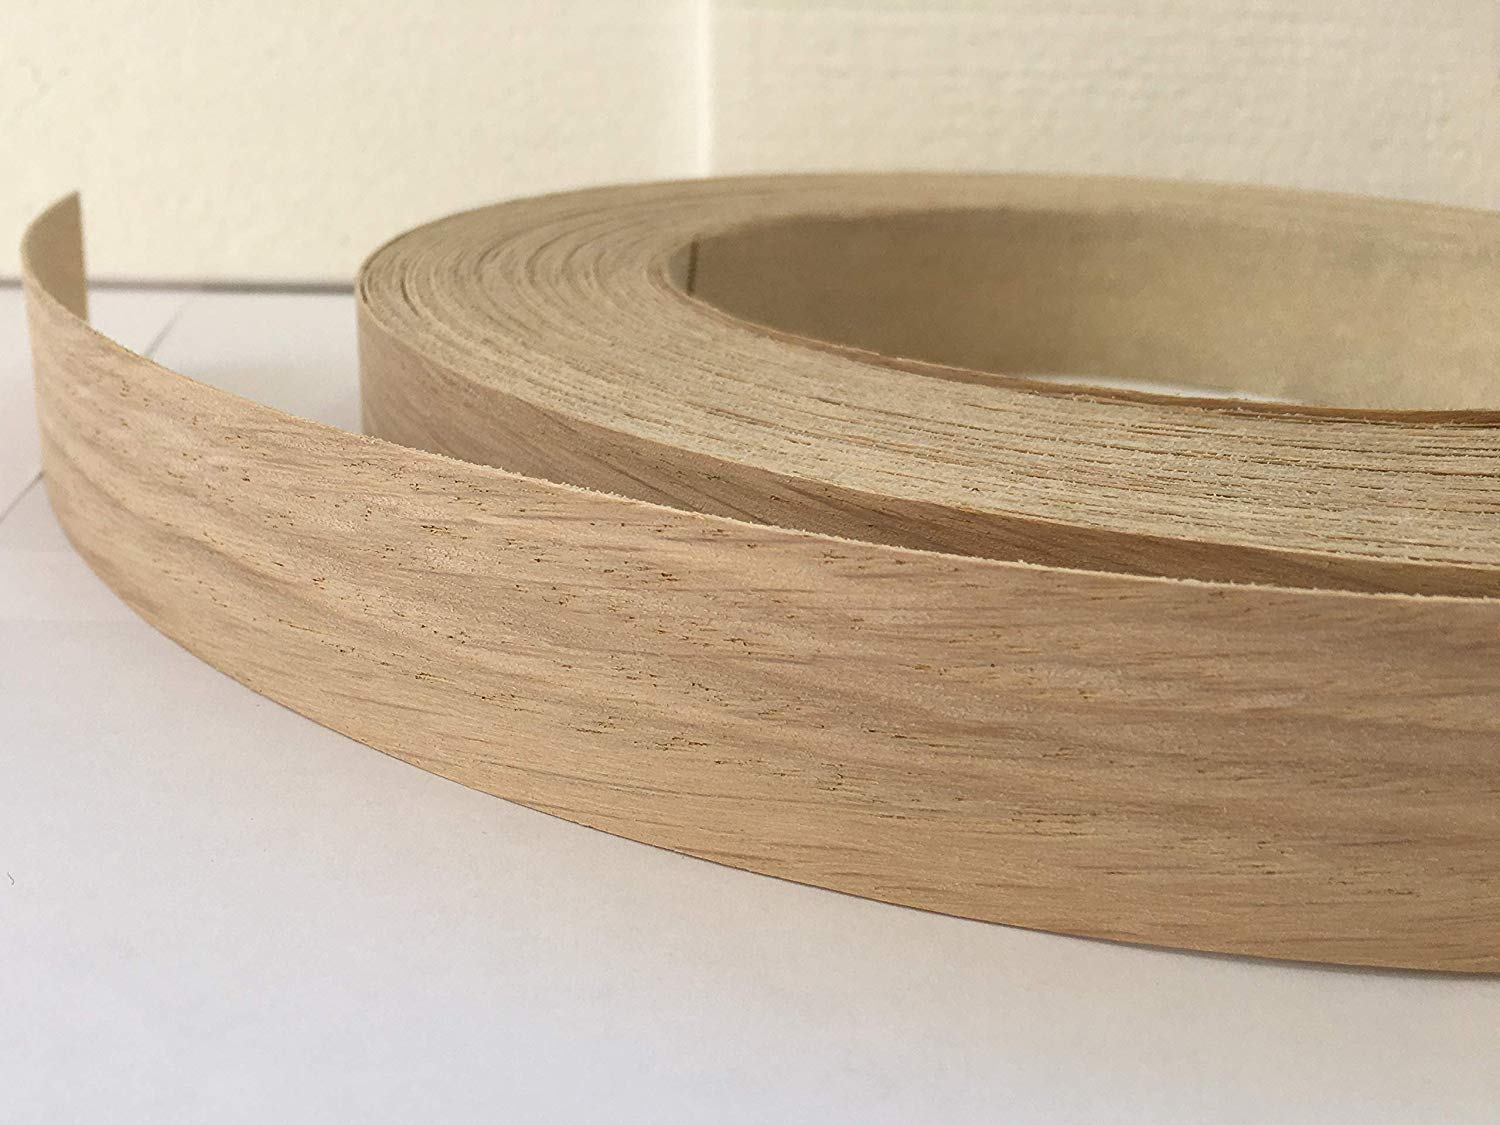 Iron on Oak Veneer Door Edging Tape/Strip 40mm Wide x 5metres 40mm Oak Veneer